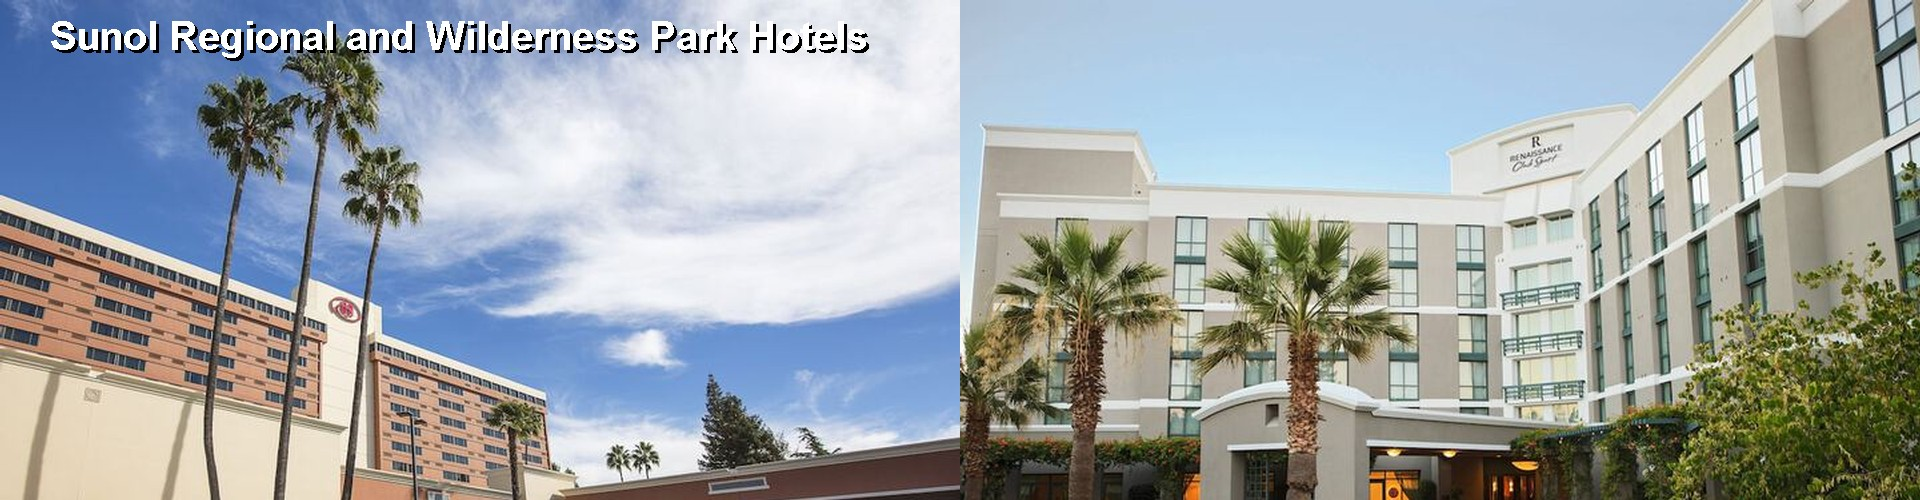 5 Best Hotels near Sunol Regional and Wilderness Park